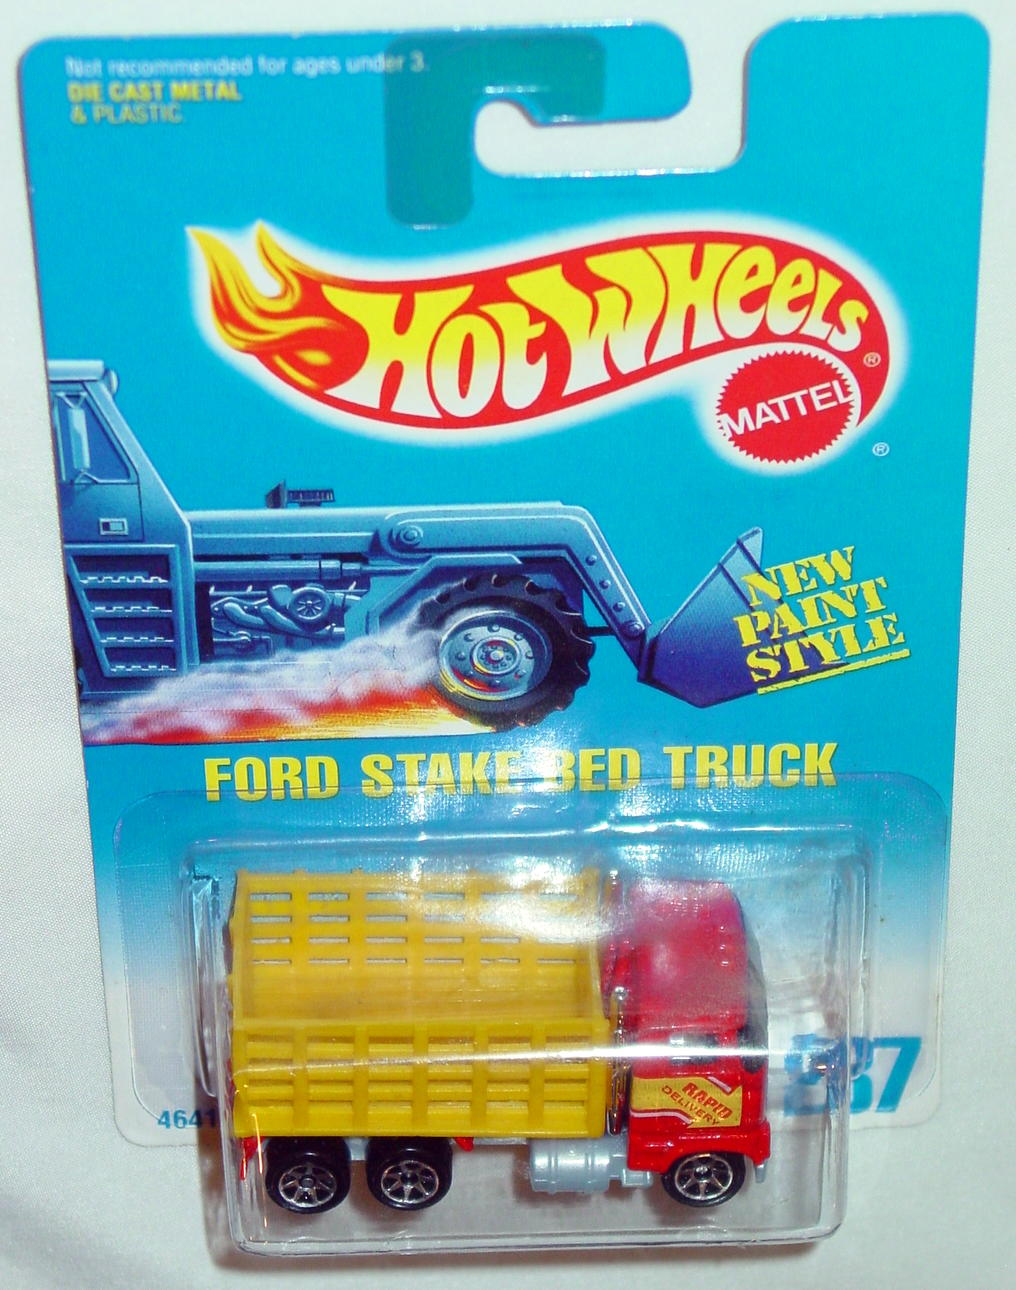 Blackwalls 4641 - 237 Ford Stake Truck Red SP7 grey plastic base